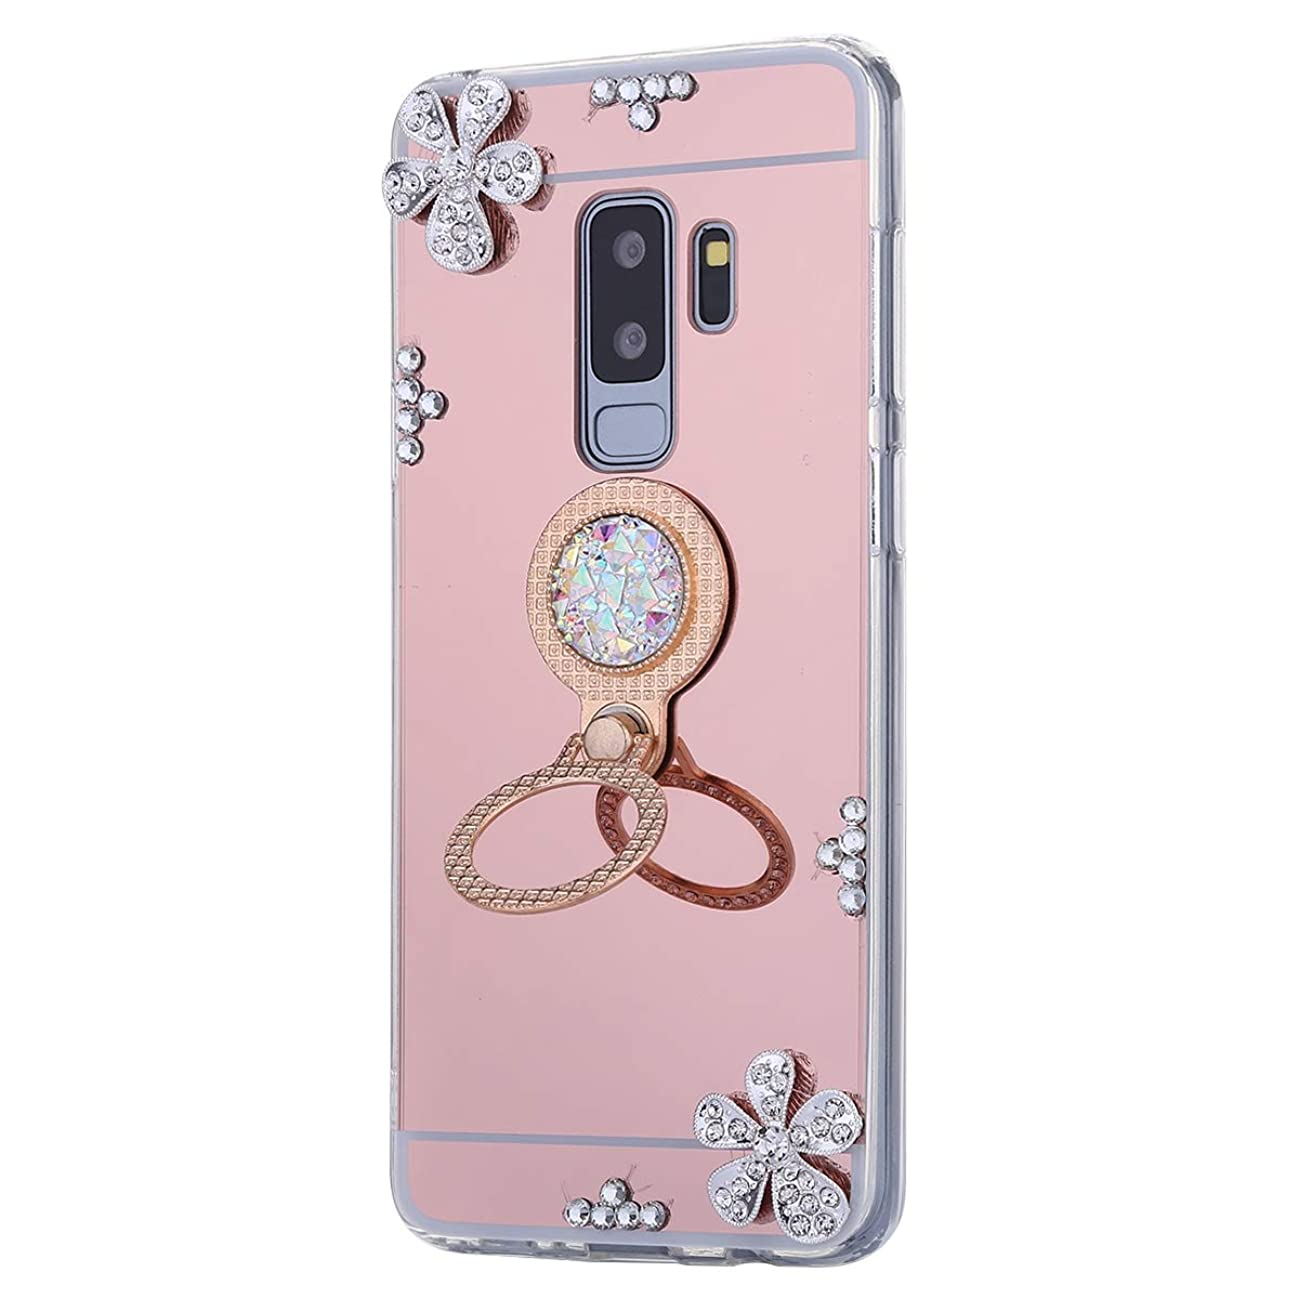 Galaxy S9 Plus Case,PHEZEN Luxury Shiny Bling Glitter Rhinestone Rose Gold Mirror Makeup Case with Ring Holder Stand Diamond Crystal Flower Protective TPU Case for Samsung Galaxy S9 Plus